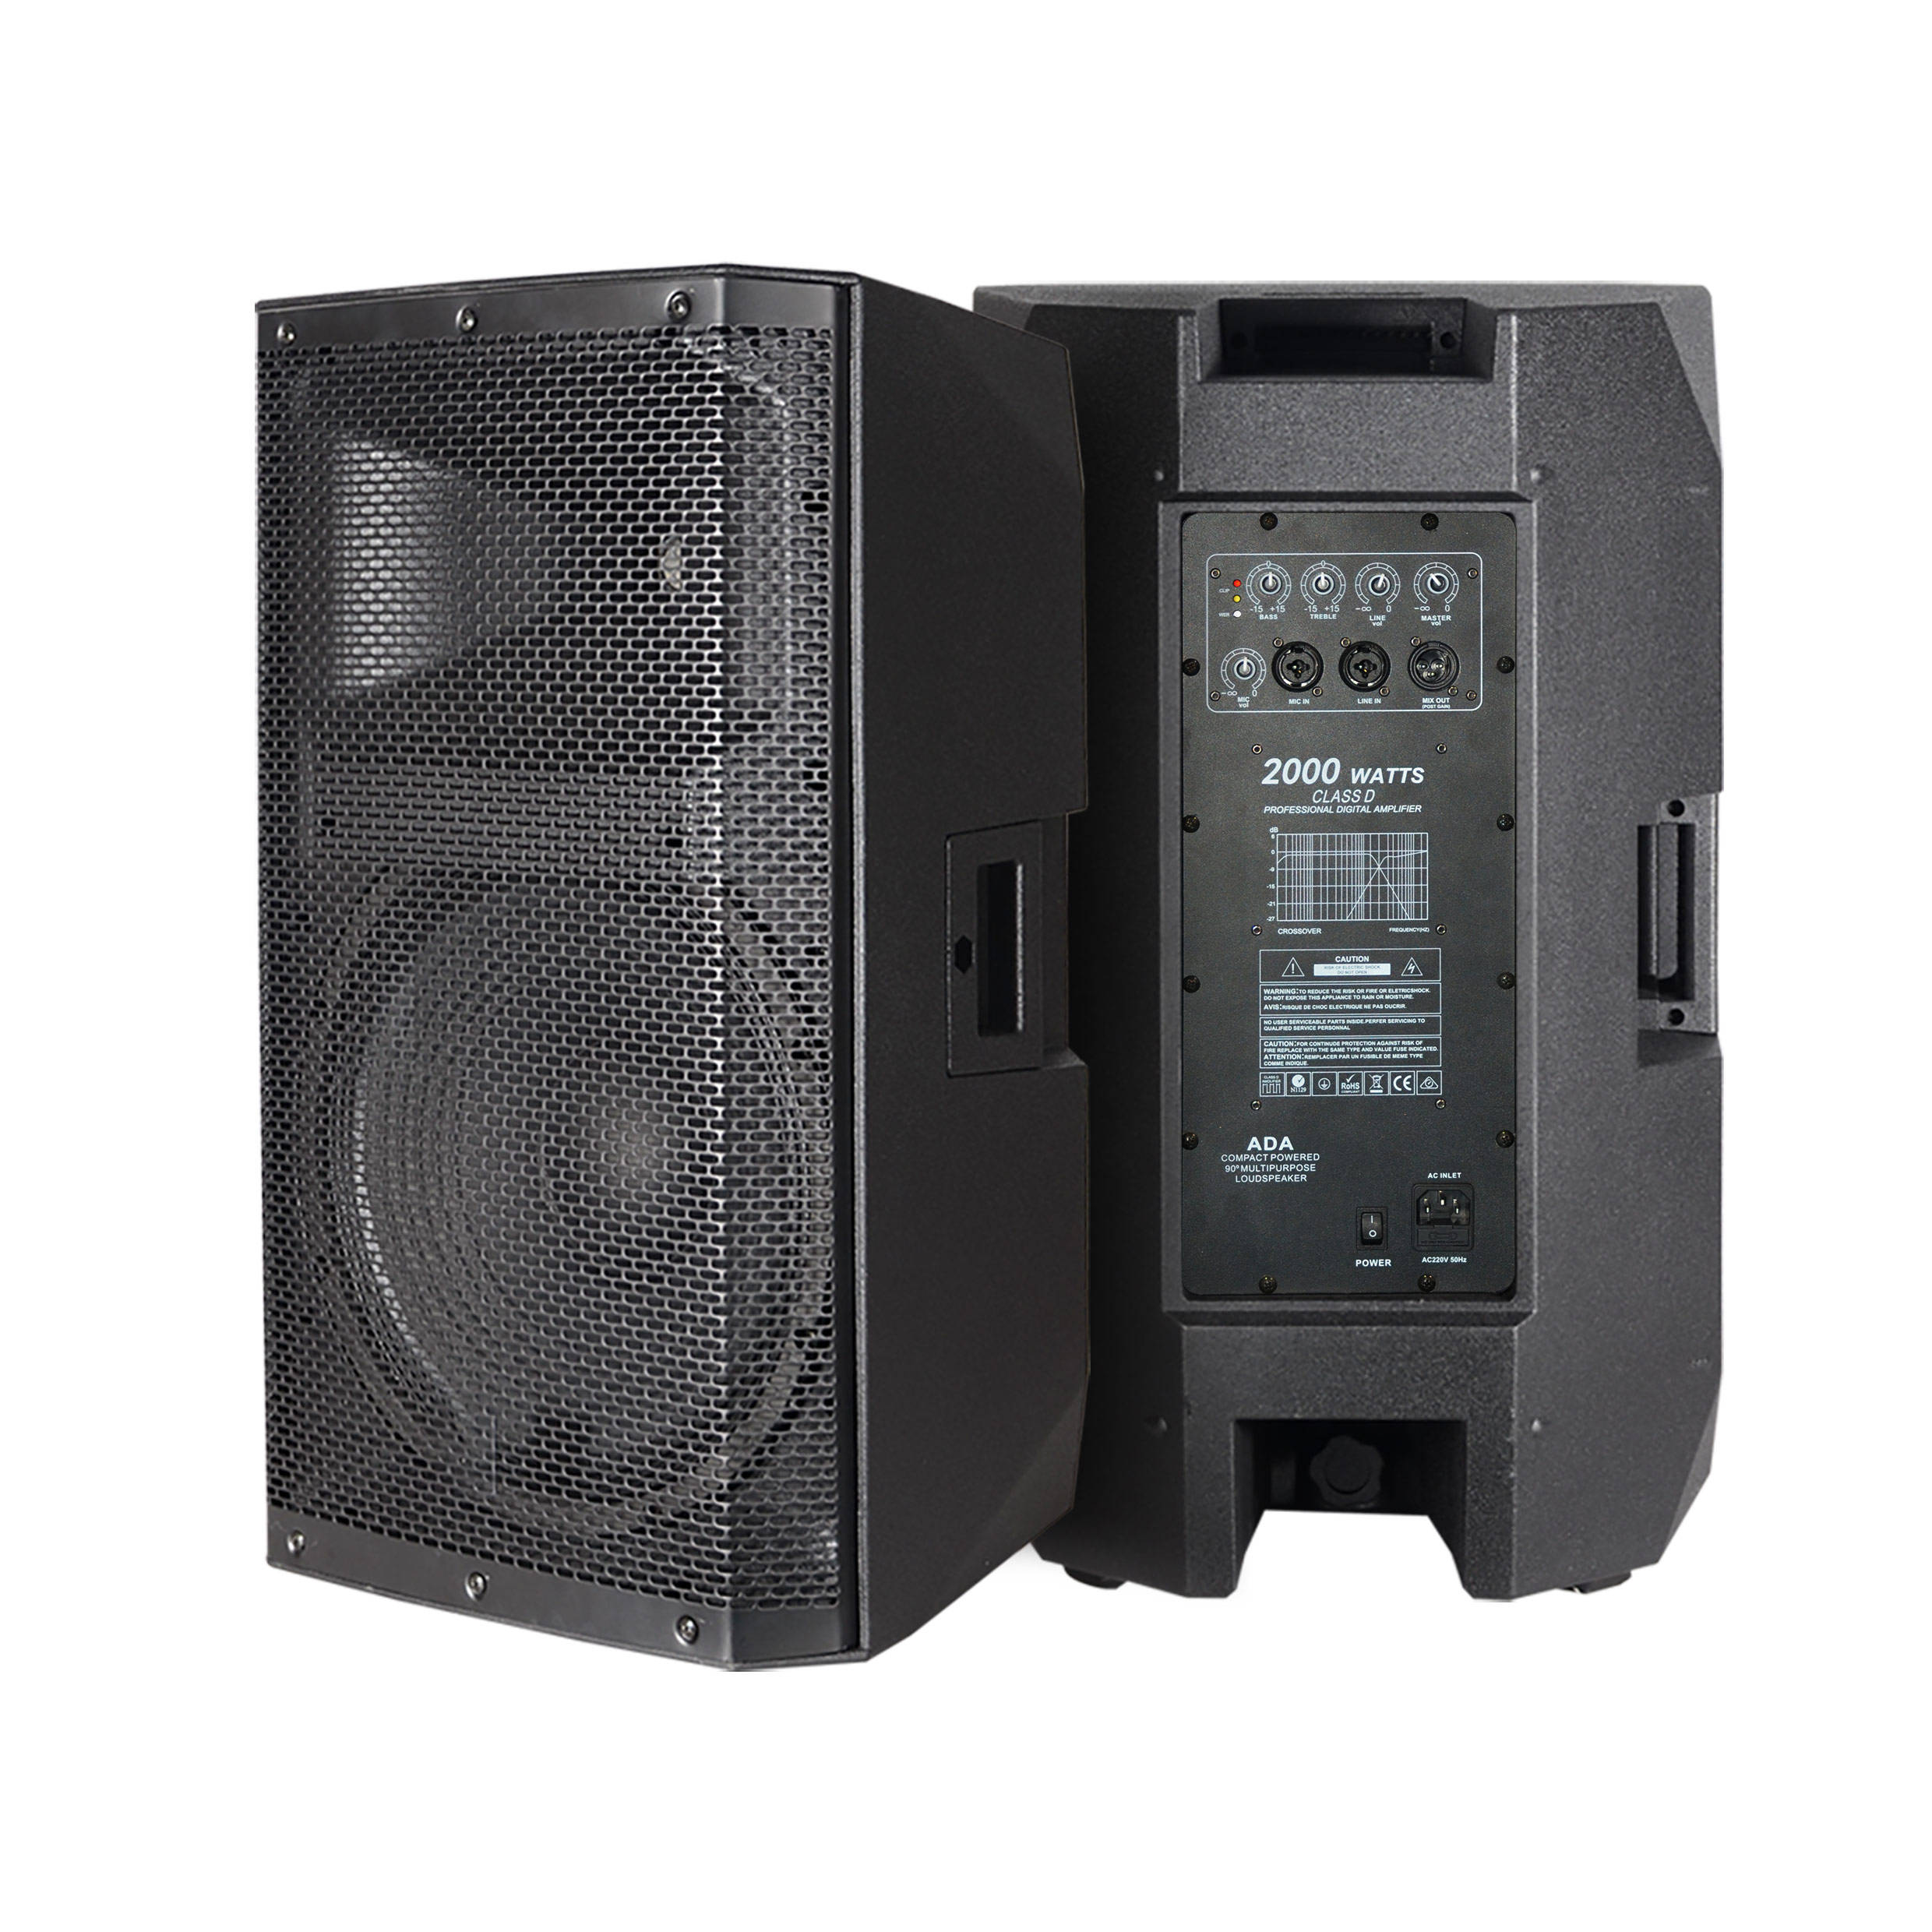 "Accuracy Pro Audio CAC15ADA Professional Audio 500W 15"" Powered Speaker Inch Active Digital Power Amplifier Speaker System"